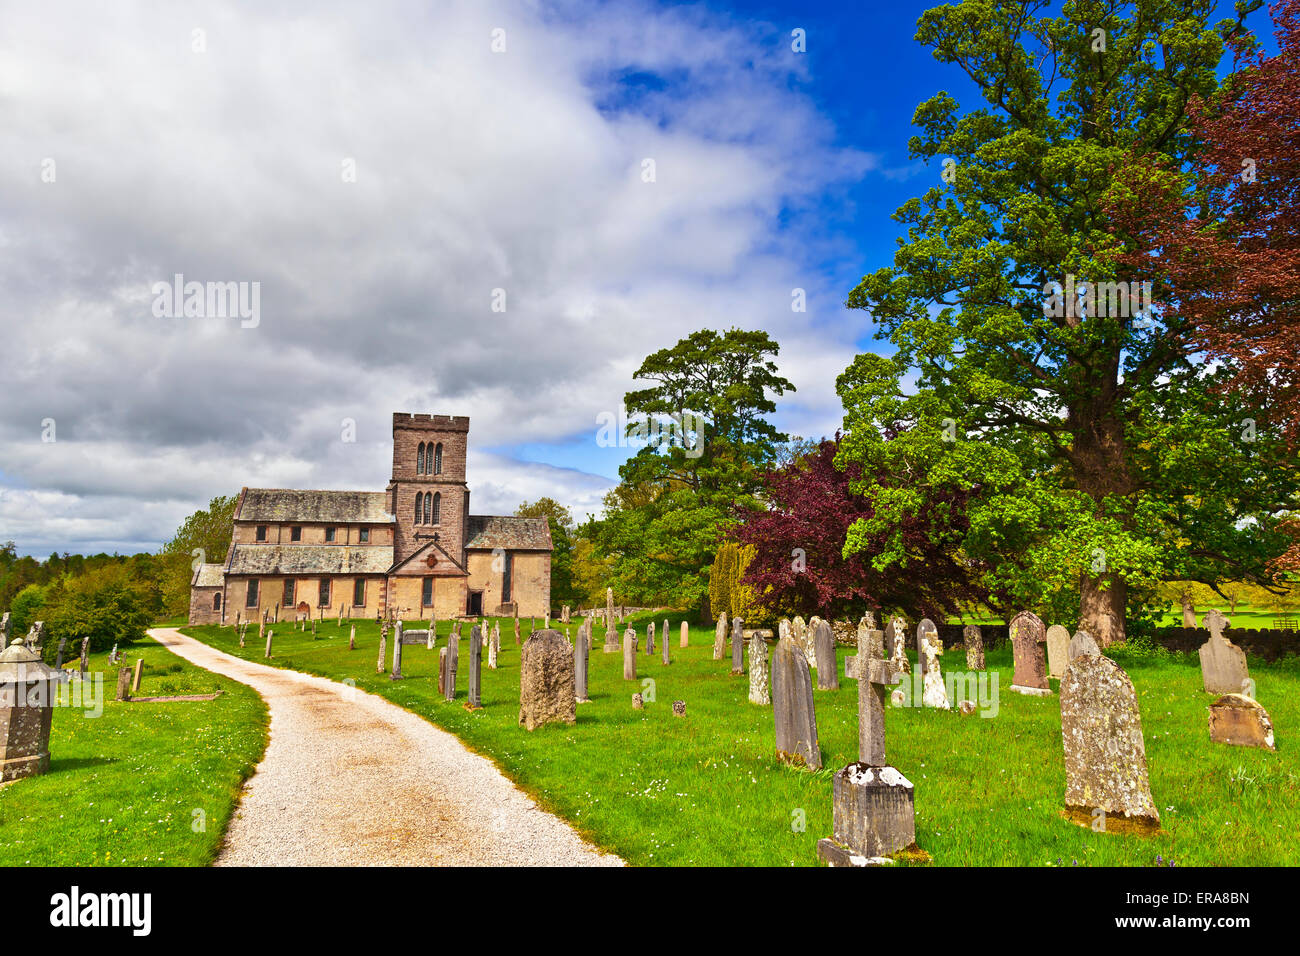 Countryside view with old road through graveyard to a rural English church. - Stock Image